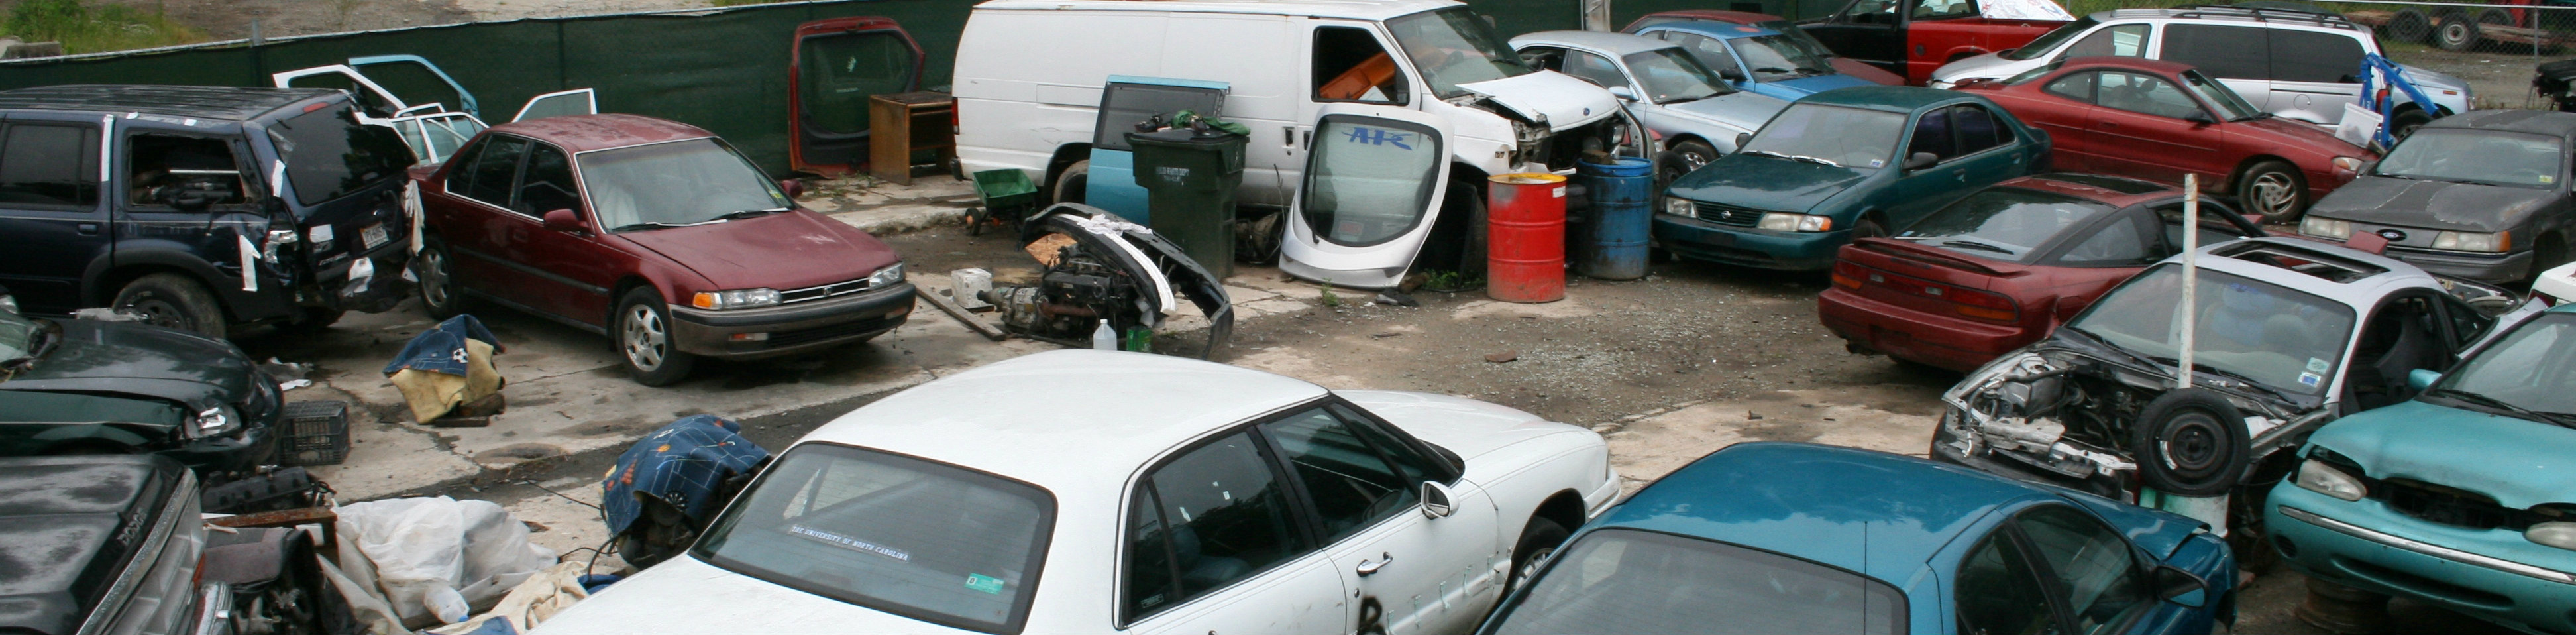 2009-07-05_Junk_cars_in_Durham.jpg